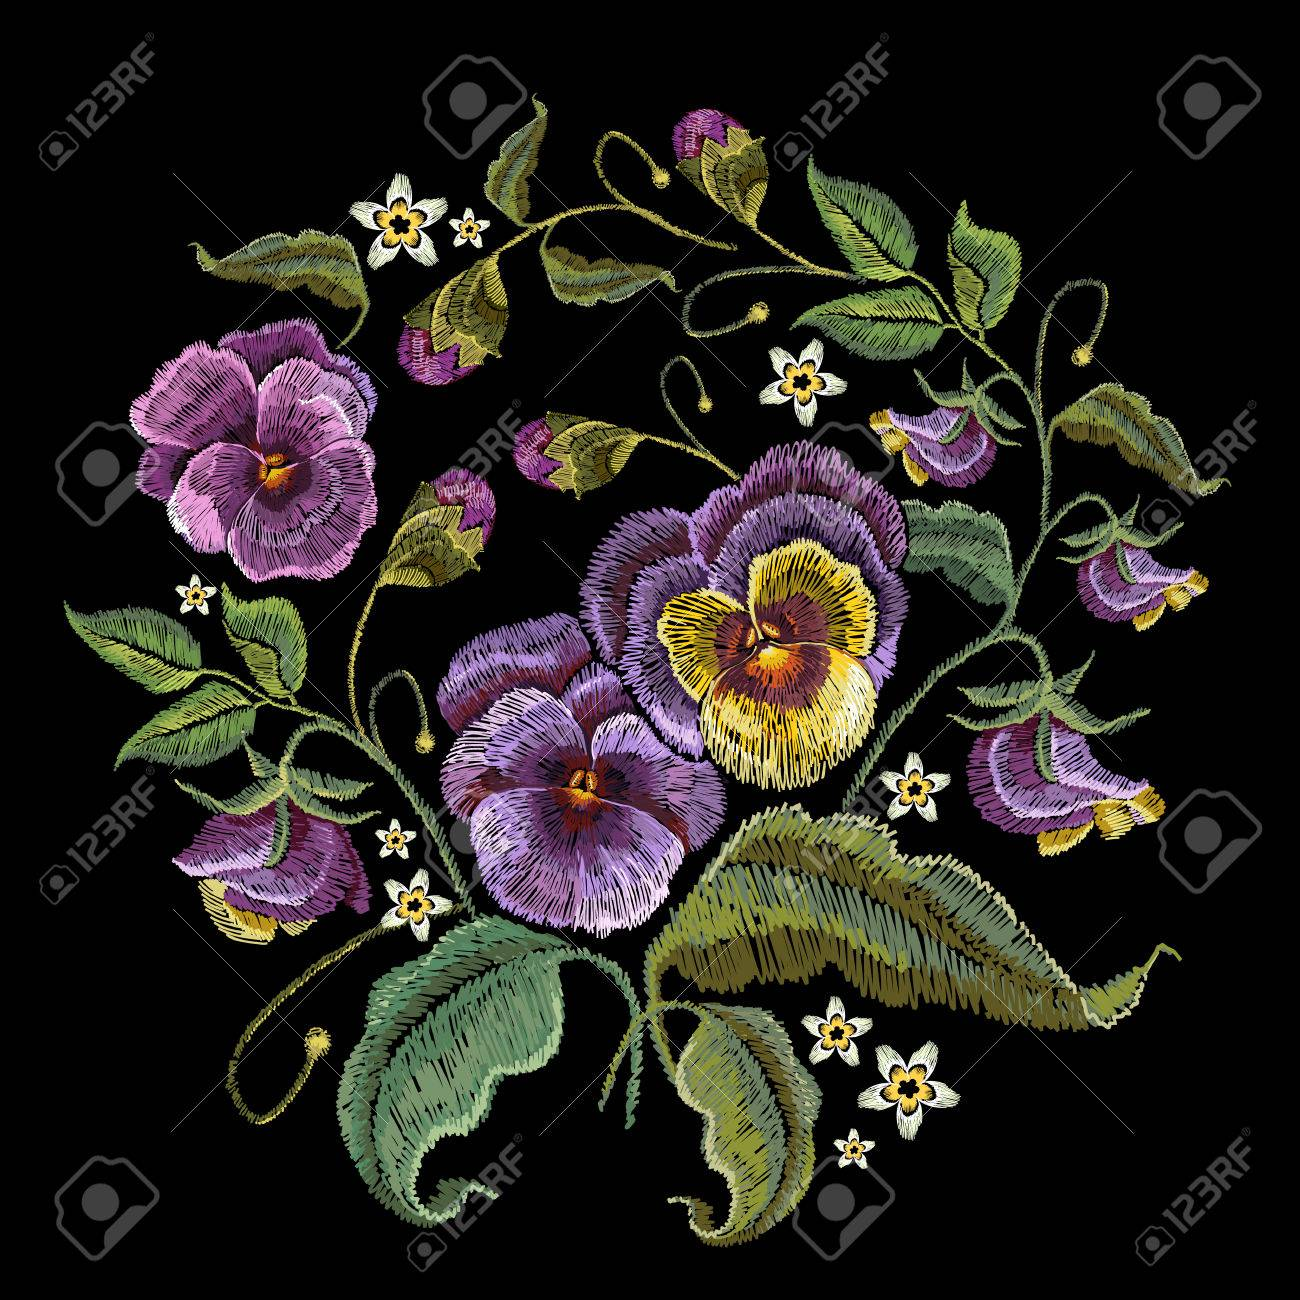 Violets Flower Embroidery Classical Embroidery Beautiful Flowers Royalty Free Cliparts Vectors And Stock Illustration Image 78597839